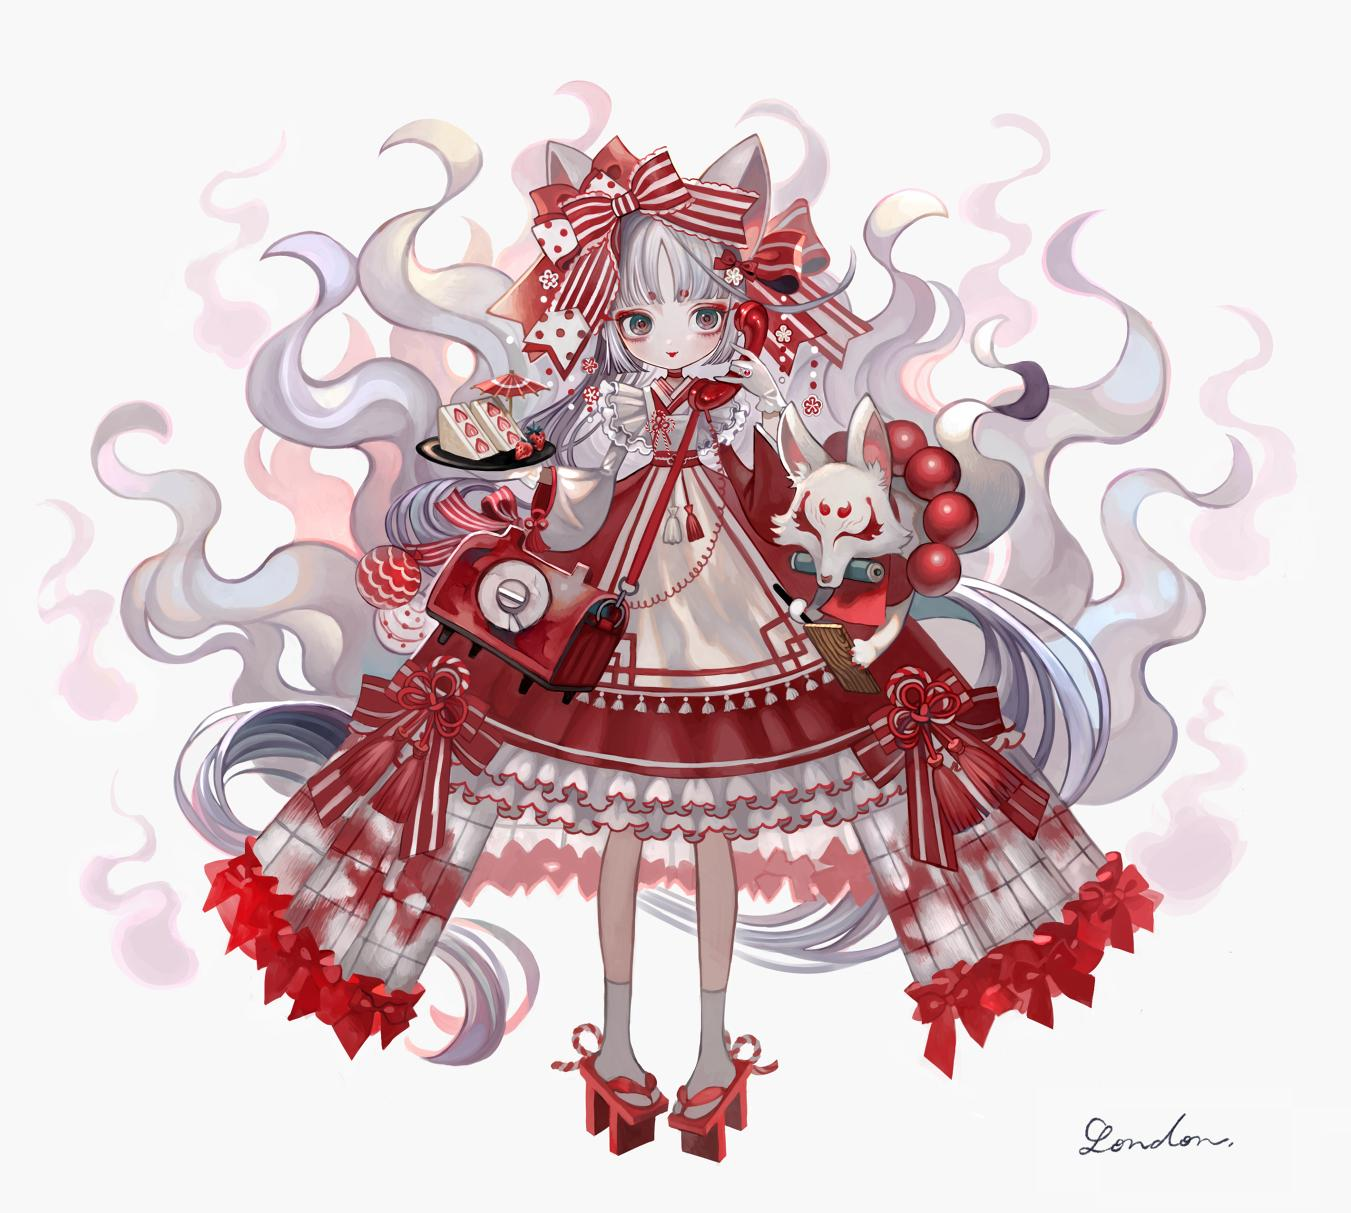 1girl animal animal_ears bag bangs blush bow brown_eyes closed_mouth commentary_request copyright_request eyebrows_visible_through_hair food fox fox_ears fruit full_body geta grey_background grey_hair hair_bow highres holding holding_phone japanese_clothes kimono kimono_skirt long_hair phone pigeon-toed polka_dot polka_dot_bow red_bow red_footwear red_kimono red_lips sandwich shiro_saki_london short_eyebrows shoulder_bag signature smile socks solo spirit standing strawberry striped striped_bow tabi tengu-geta thick_eyebrows very_long_hair white_bow white_legwear